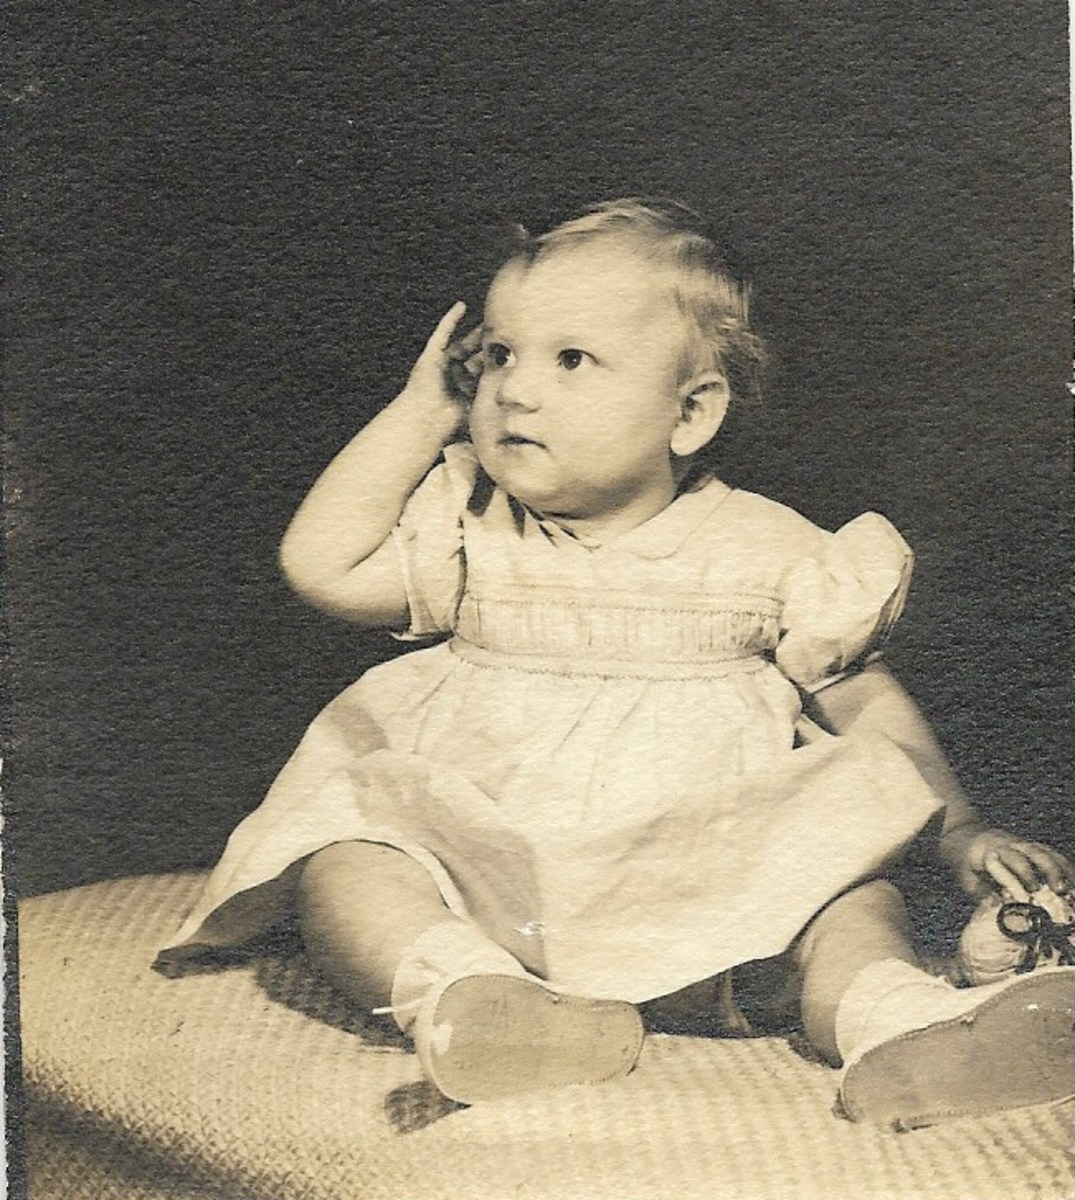 I was a year old in this picture, the only one I have of myself as a baby.